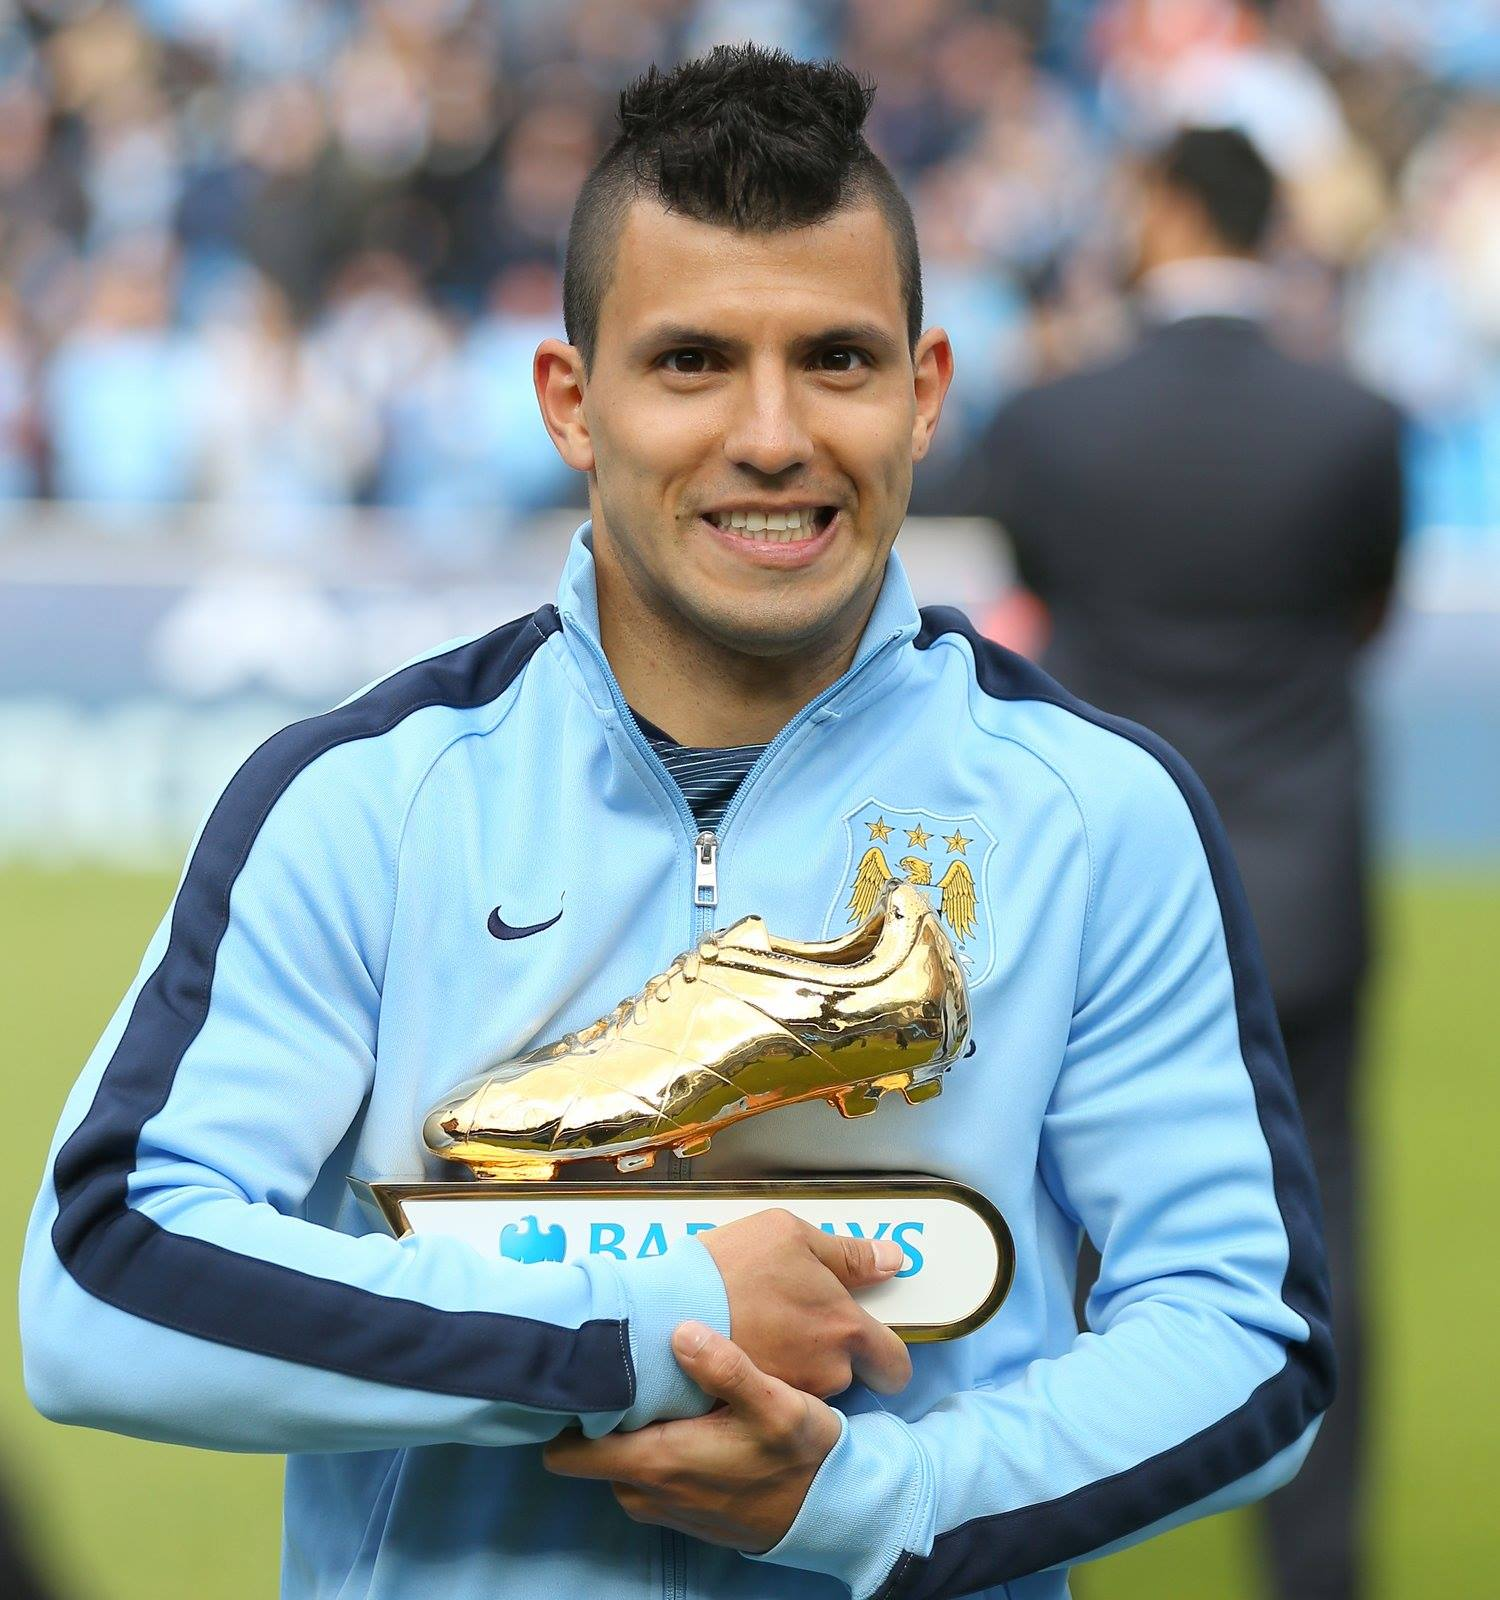 Goal-den Boy - Super Sergio wants to win his second consecutive Golden Boot Award by bagging a brace or more at Swansea. Courtesy@MCFC